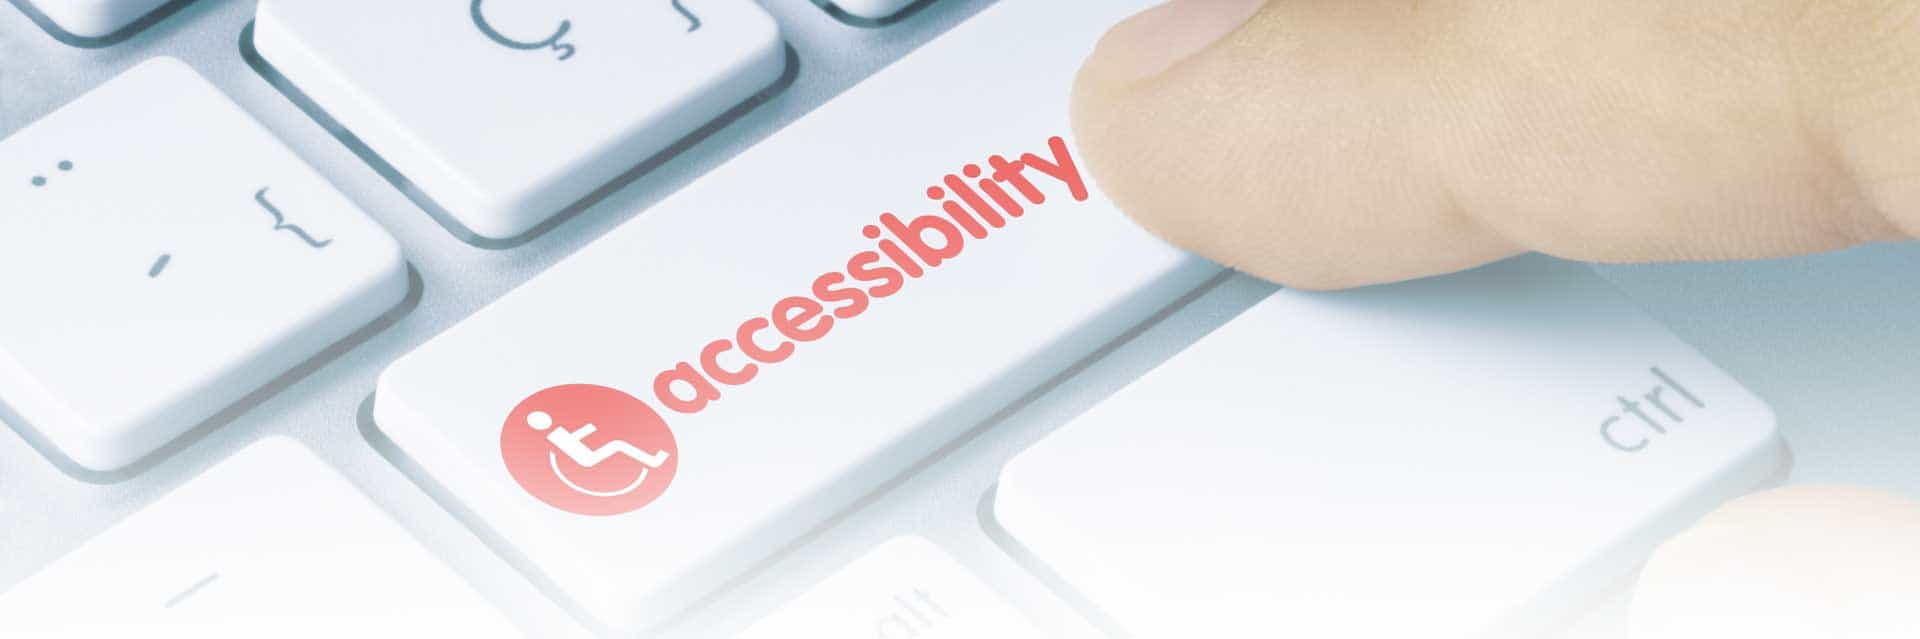 Accessibility Banner; keyboard with red button that says accessibility